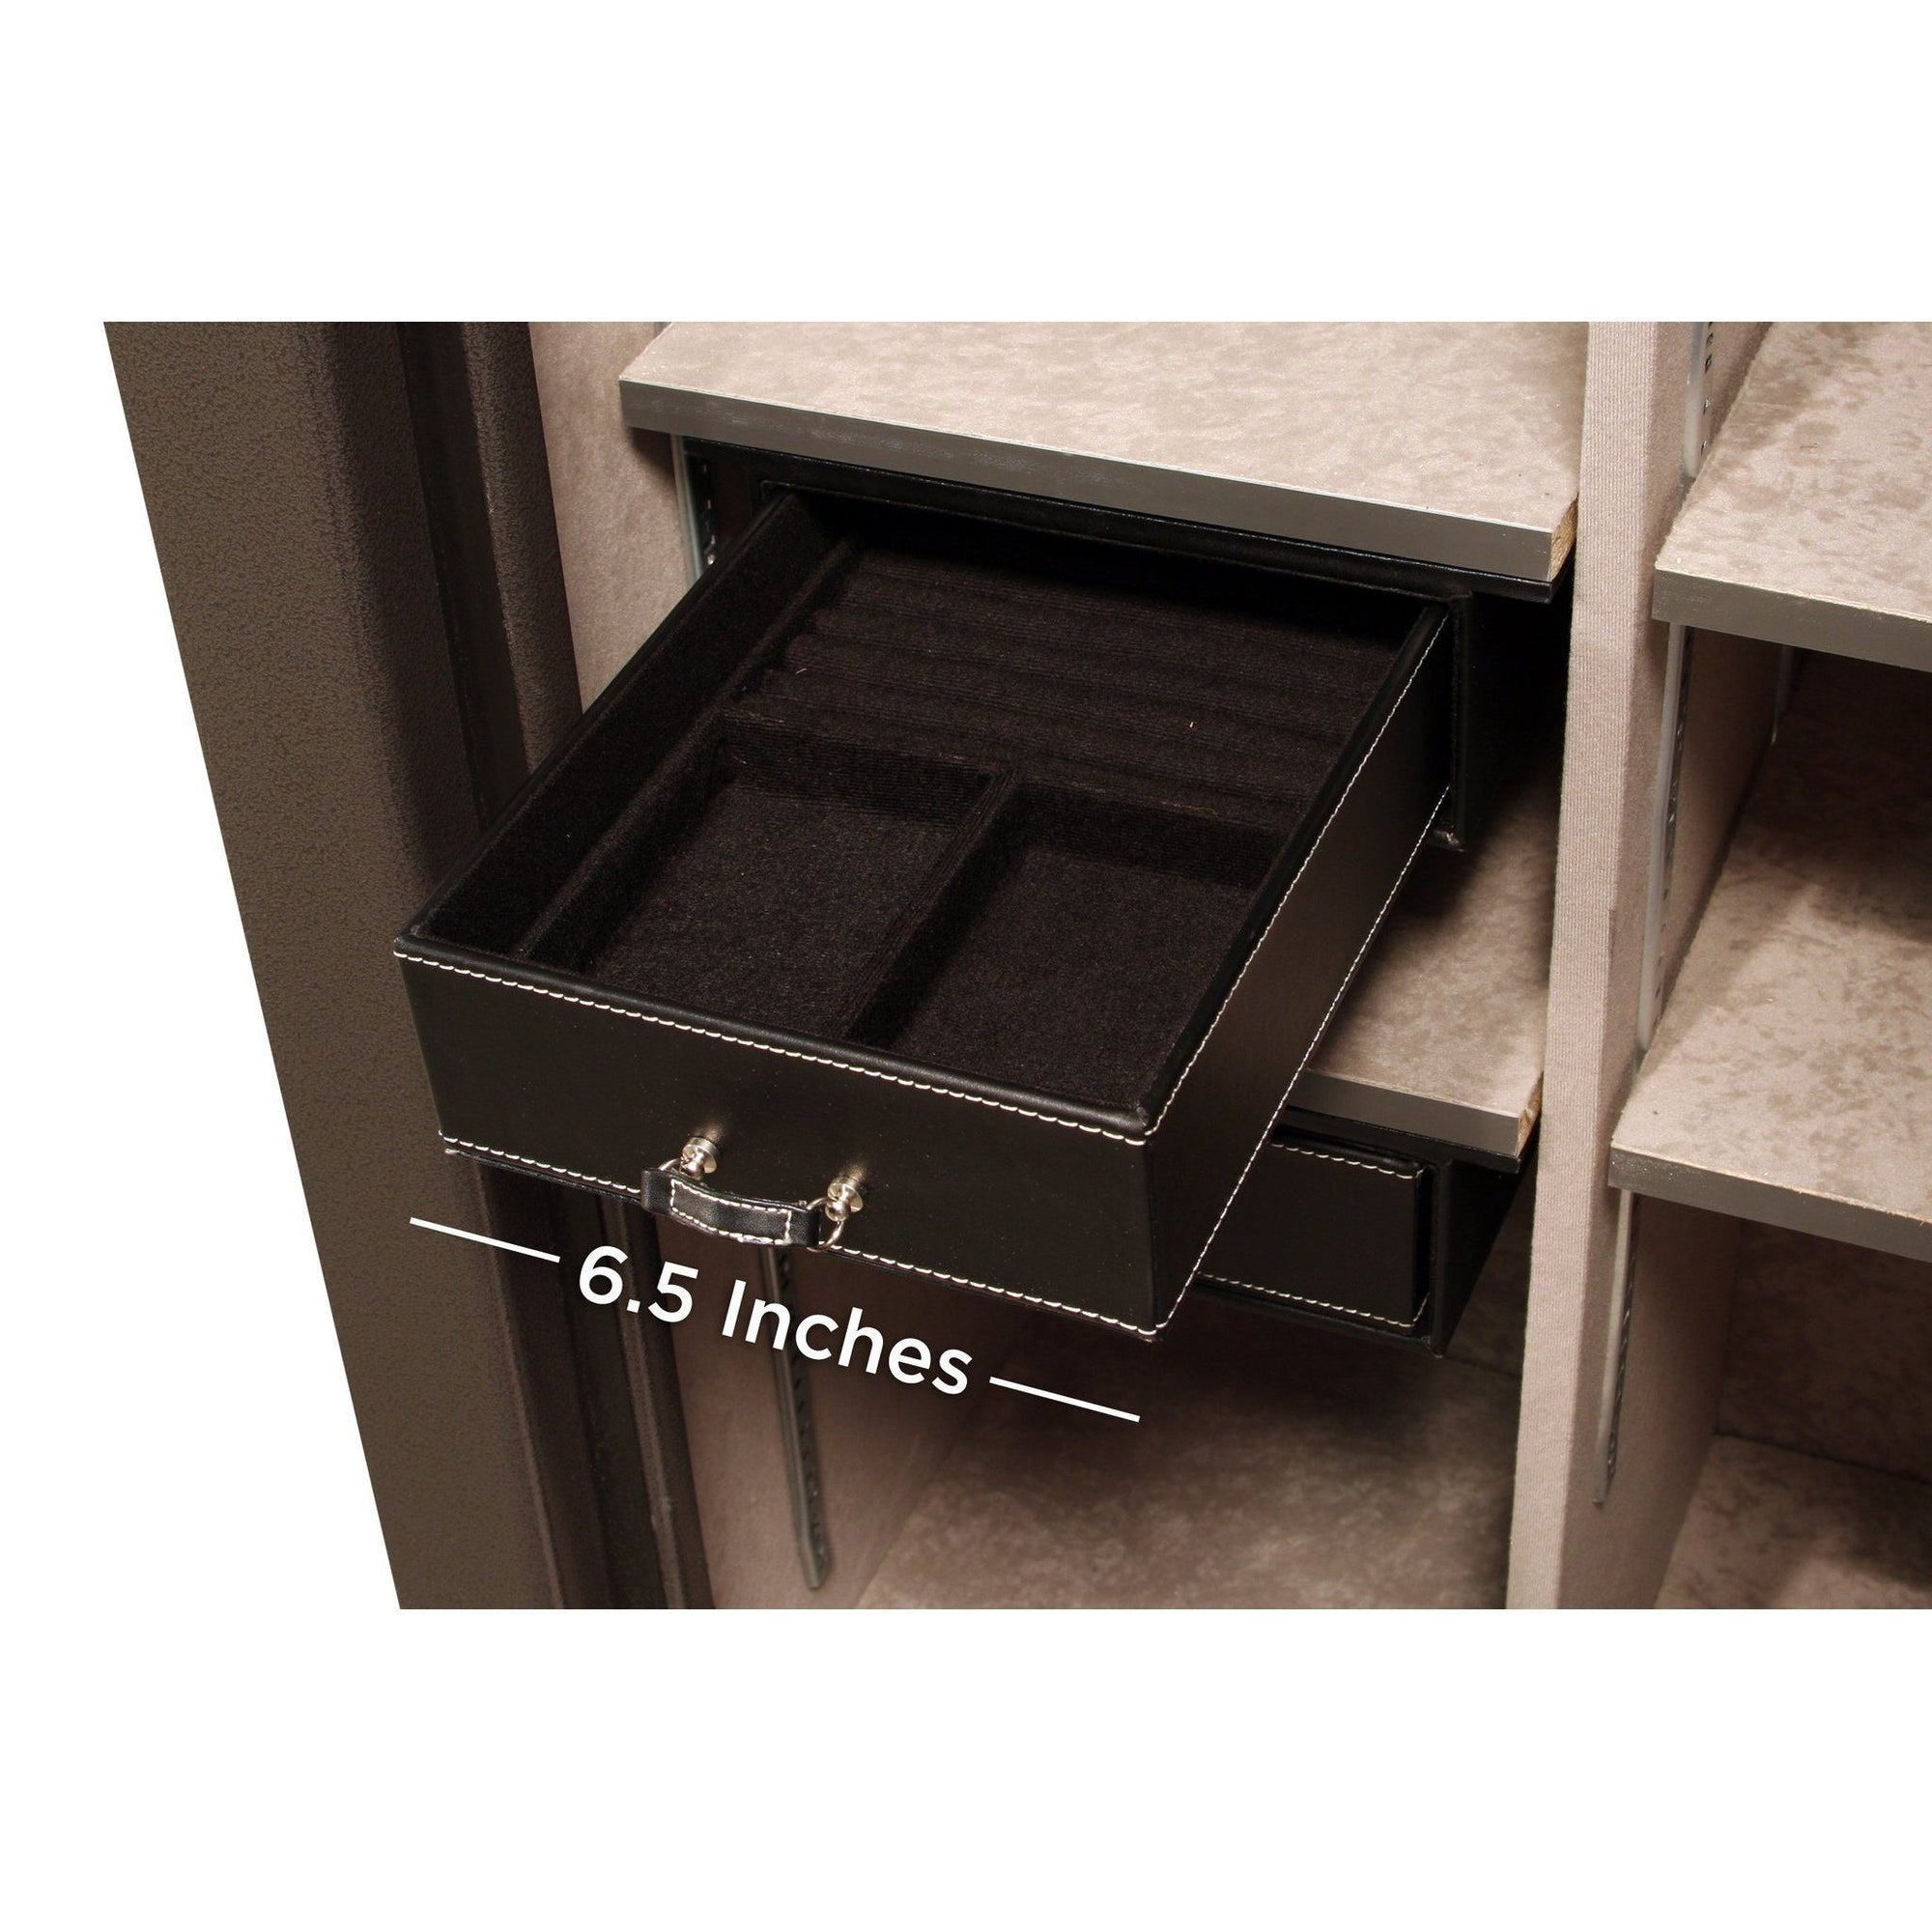 Liberty Safe-accessory-storage-jewelry-drawer-6-5-inch-under-shelf-mount-20-size-safes